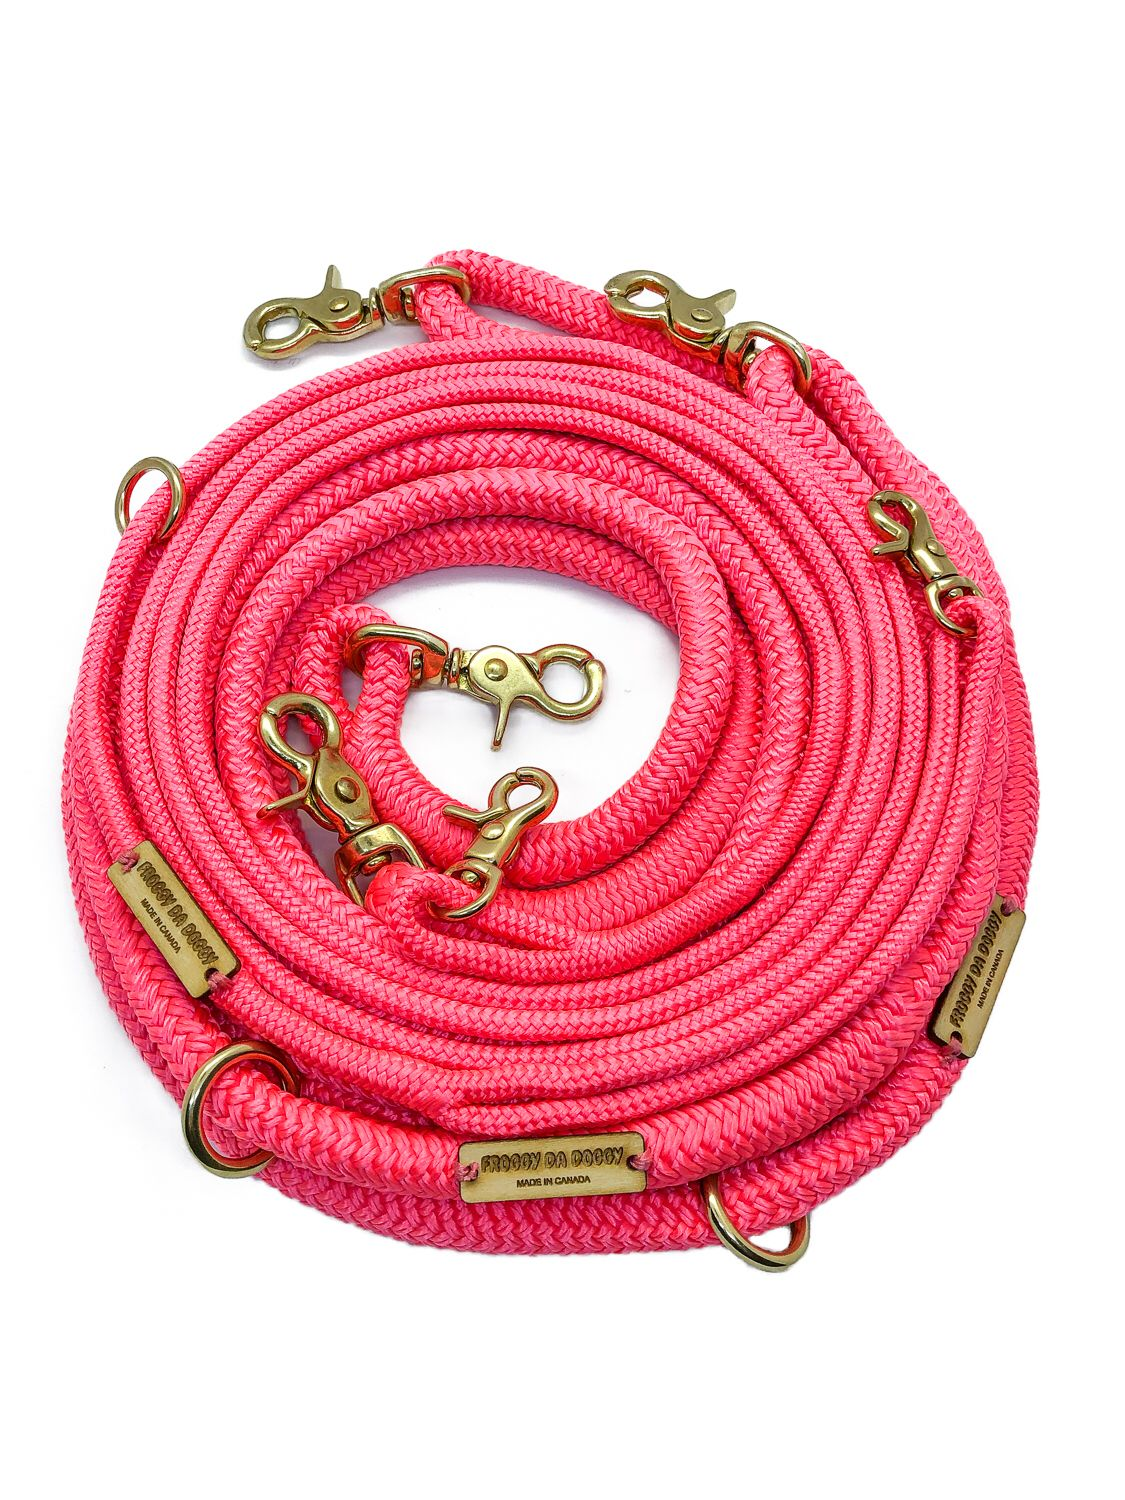 1 Courier Type Messager Style 2 Belt Type Running Style 3 Leash 9 Flexible Style 2 7 M 4 2 Dog Leash Double Dog Lead 5 Trainning Leash 4 5 Rope Dog